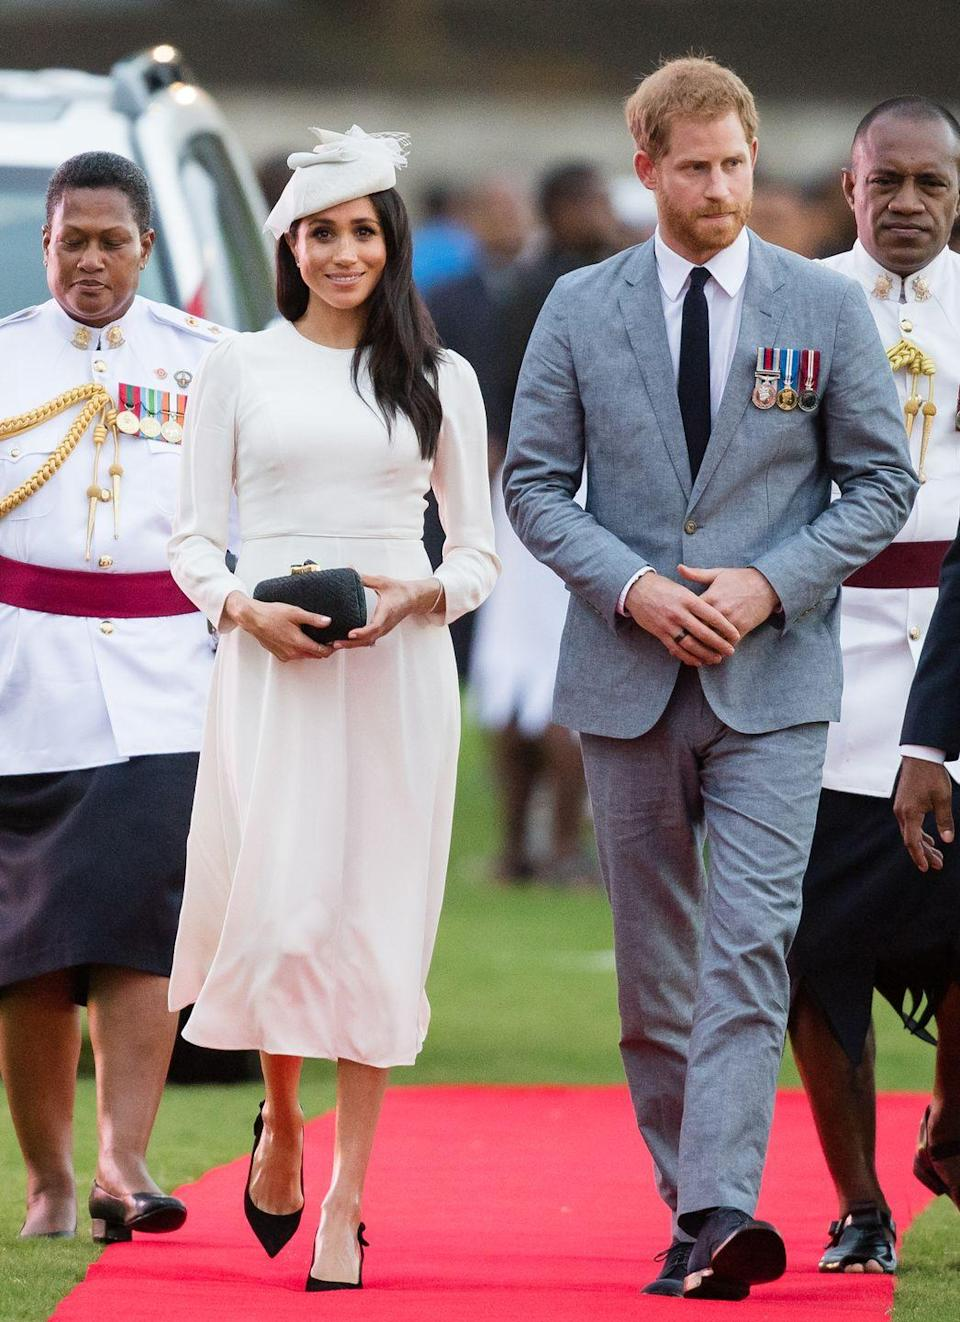 """<p>Harry and <a href=""""https://www.townandcountrymag.com/style/fashion-trends/a24066587/meghan-markle-zimmerman-royal-tour-fiji-photos/"""" rel=""""nofollow noopener"""" target=""""_blank"""" data-ylk=""""slk:Meghan have landed in Fiji!"""" class=""""link rapid-noclick-resp"""">Meghan have landed in Fiji!</a> For their arrival, the Duchess wore a white dress by <a href=""""https://www.instagram.com/zimmermann/?hl=en"""" rel=""""nofollow noopener"""" target=""""_blank"""" data-ylk=""""slk:Zimmermann"""" class=""""link rapid-noclick-resp"""">Zimmermann</a> with a matching Stephen Jones fascinator. She also wore a straw clutch by Kayu with a pair of heels by Tabitha Simmons.</p><p><a class=""""link rapid-noclick-resp"""" href=""""https://go.redirectingat.com?id=74968X1596630&url=https%3A%2F%2Fwww.bloomingdales.com%2Fshop%2Fproduct%2Ftabitha-simmons-womens-millie-slingback-pointed-toe-pumps%3FID%3D2956738&sref=https%3A%2F%2Fwww.townandcountrymag.com%2Fstyle%2Ffashion-trends%2Fg3272%2Fmeghan-markle-preppy-style%2F"""" rel=""""nofollow noopener"""" target=""""_blank"""" data-ylk=""""slk:SHOP NOW"""">SHOP NOW</a> <em>Millie Slingback Pumps by Tabitha Simmons, $695</em></p><p><a class=""""link rapid-noclick-resp"""" href=""""https://go.redirectingat.com?id=74968X1596630&url=https%3A%2F%2Fwww.shopbop.com%2Fanna-straw-clutch-kayu%2Fvp%2Fv%3D1%2F1560096446.htm&sref=https%3A%2F%2Fwww.townandcountrymag.com%2Fstyle%2Ffashion-trends%2Fg3272%2Fmeghan-markle-preppy-style%2F"""" rel=""""nofollow noopener"""" target=""""_blank"""" data-ylk=""""slk:SHOP NOW"""">SHOP NOW </a><em>Kayu Anna Straw Clutch, $157.50</em></p>"""